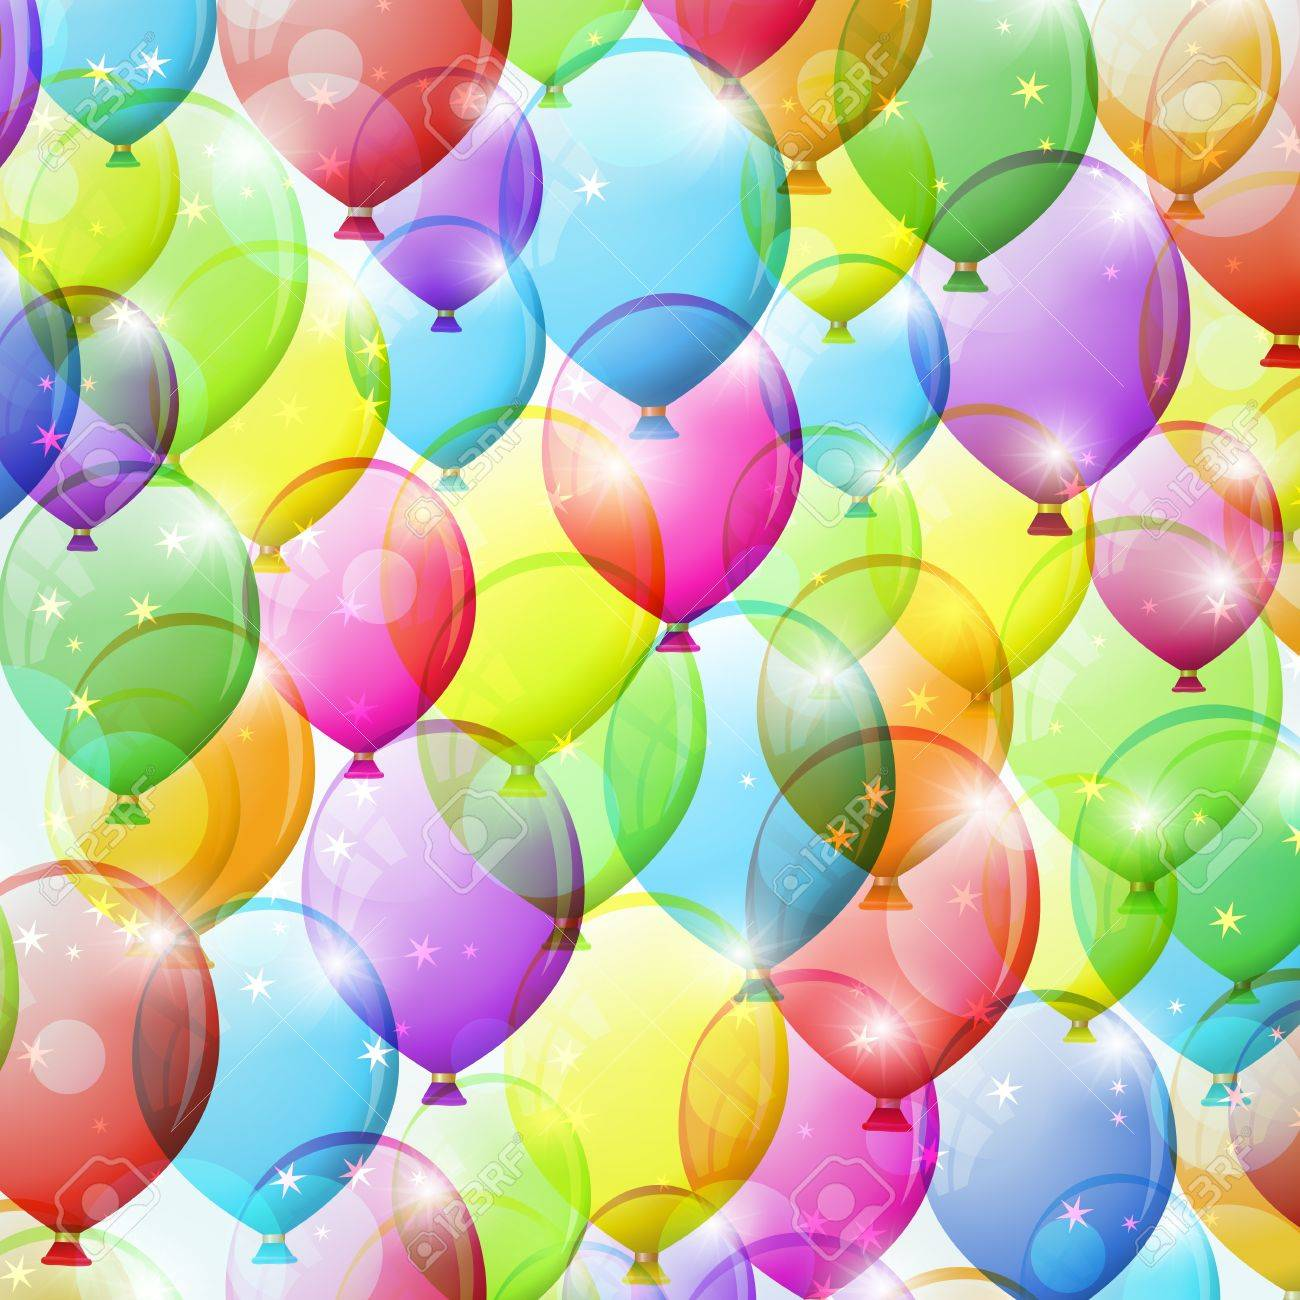 Festive background with colorful balloons. Vector illustration. Stock Vector - 17314604